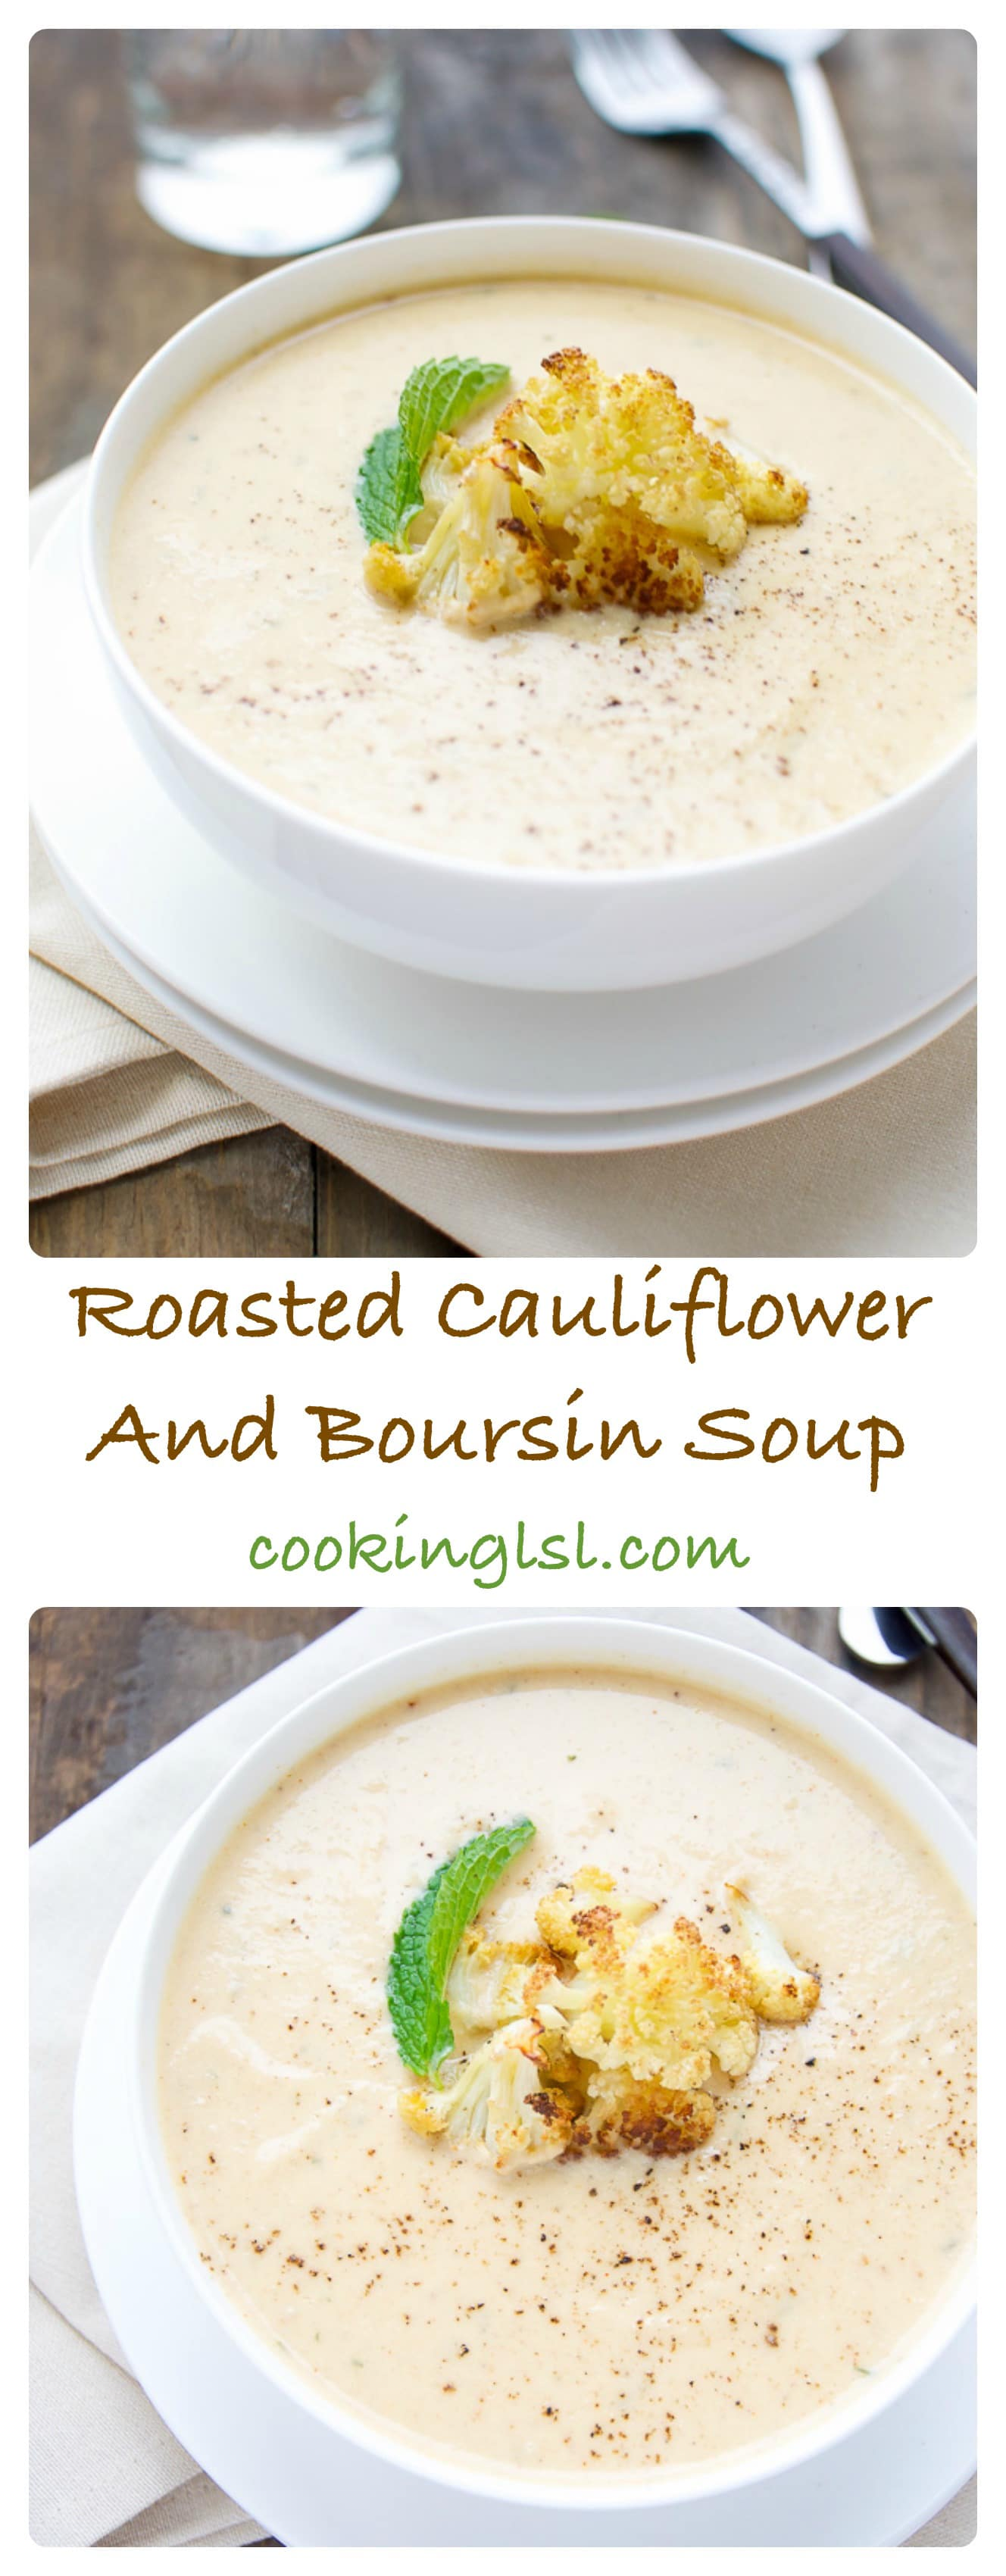 Roasted Cauliflower And Boursin Soup